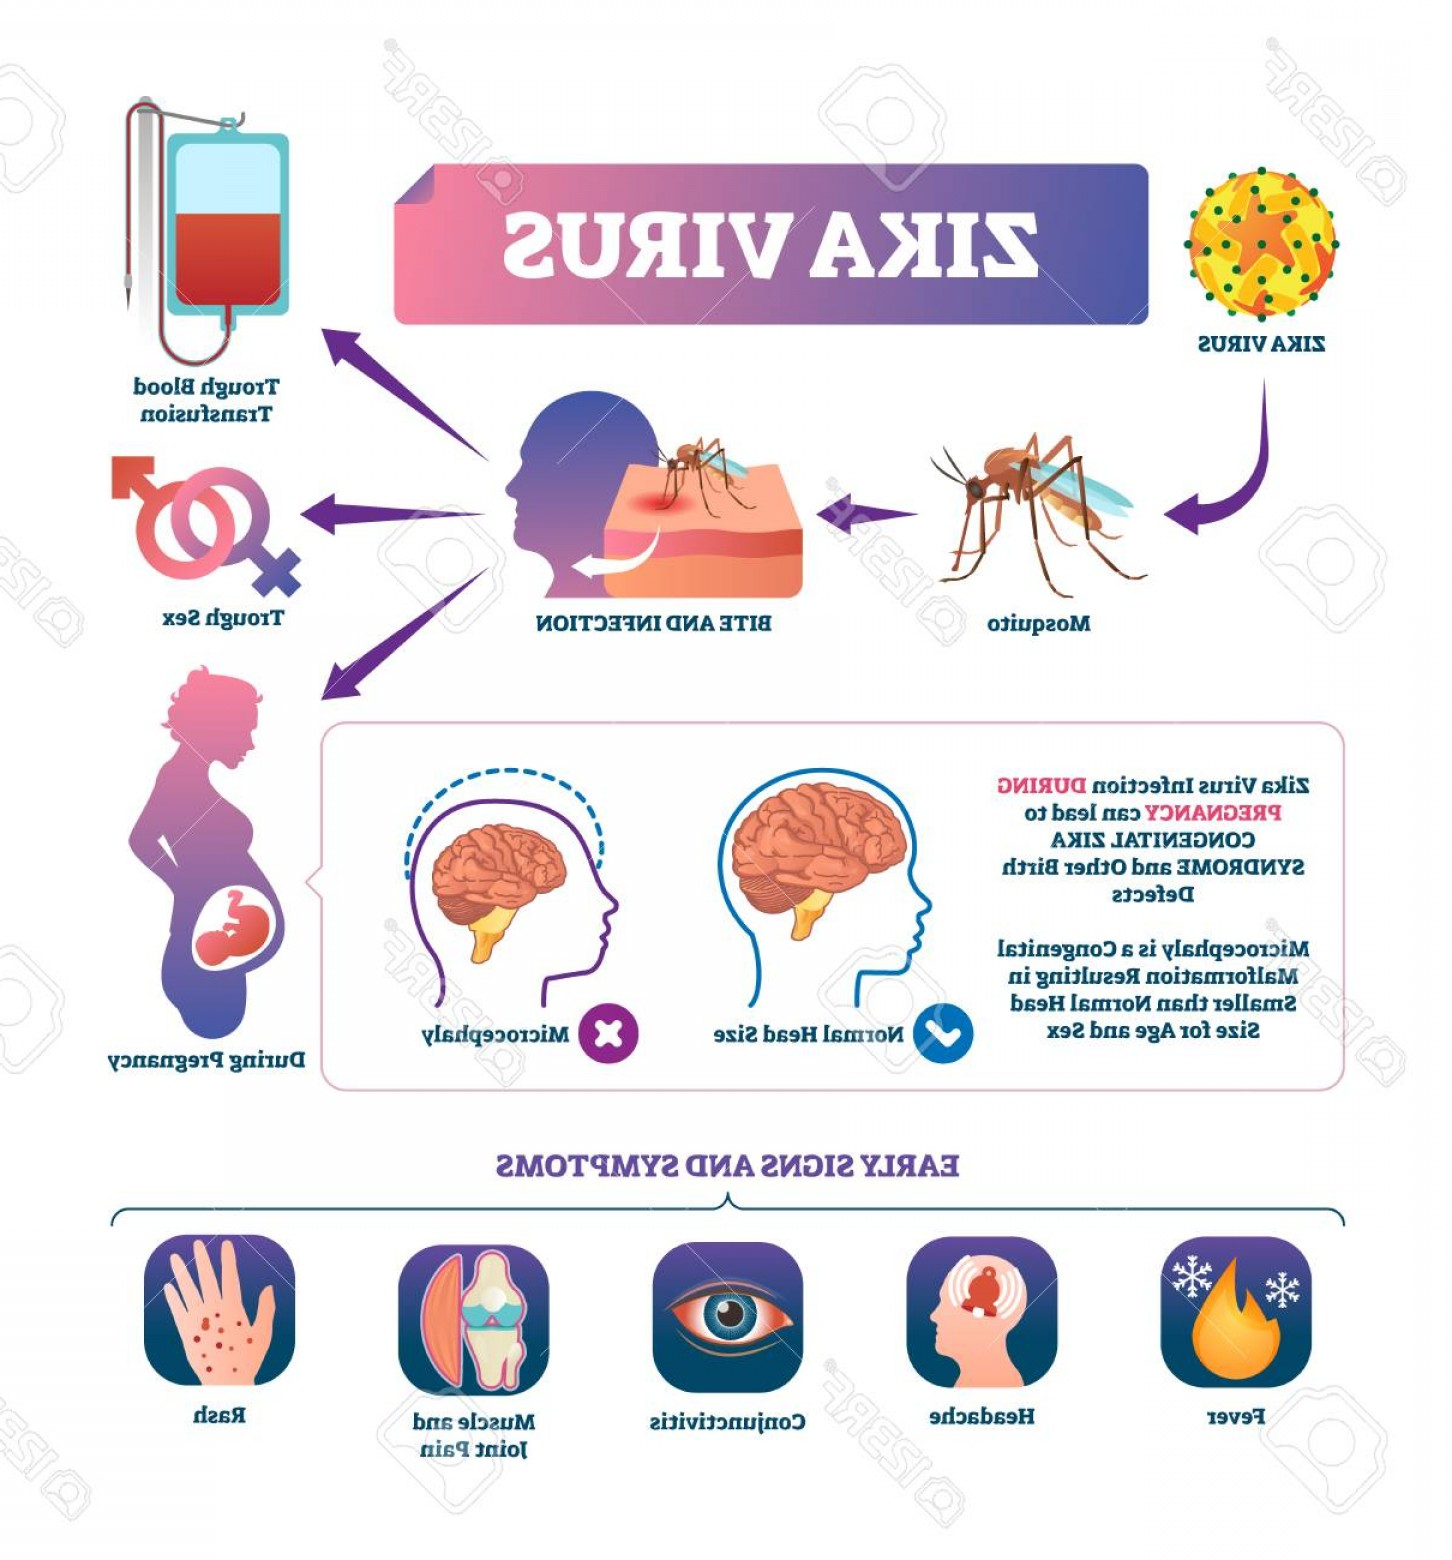 Vector -Borne Transmission Of Disease: Photostock Vector Zika Virus Vector Illustration Labeled Mosquito Bite Infection Signs And Symptoms Scheme Epidemic Di